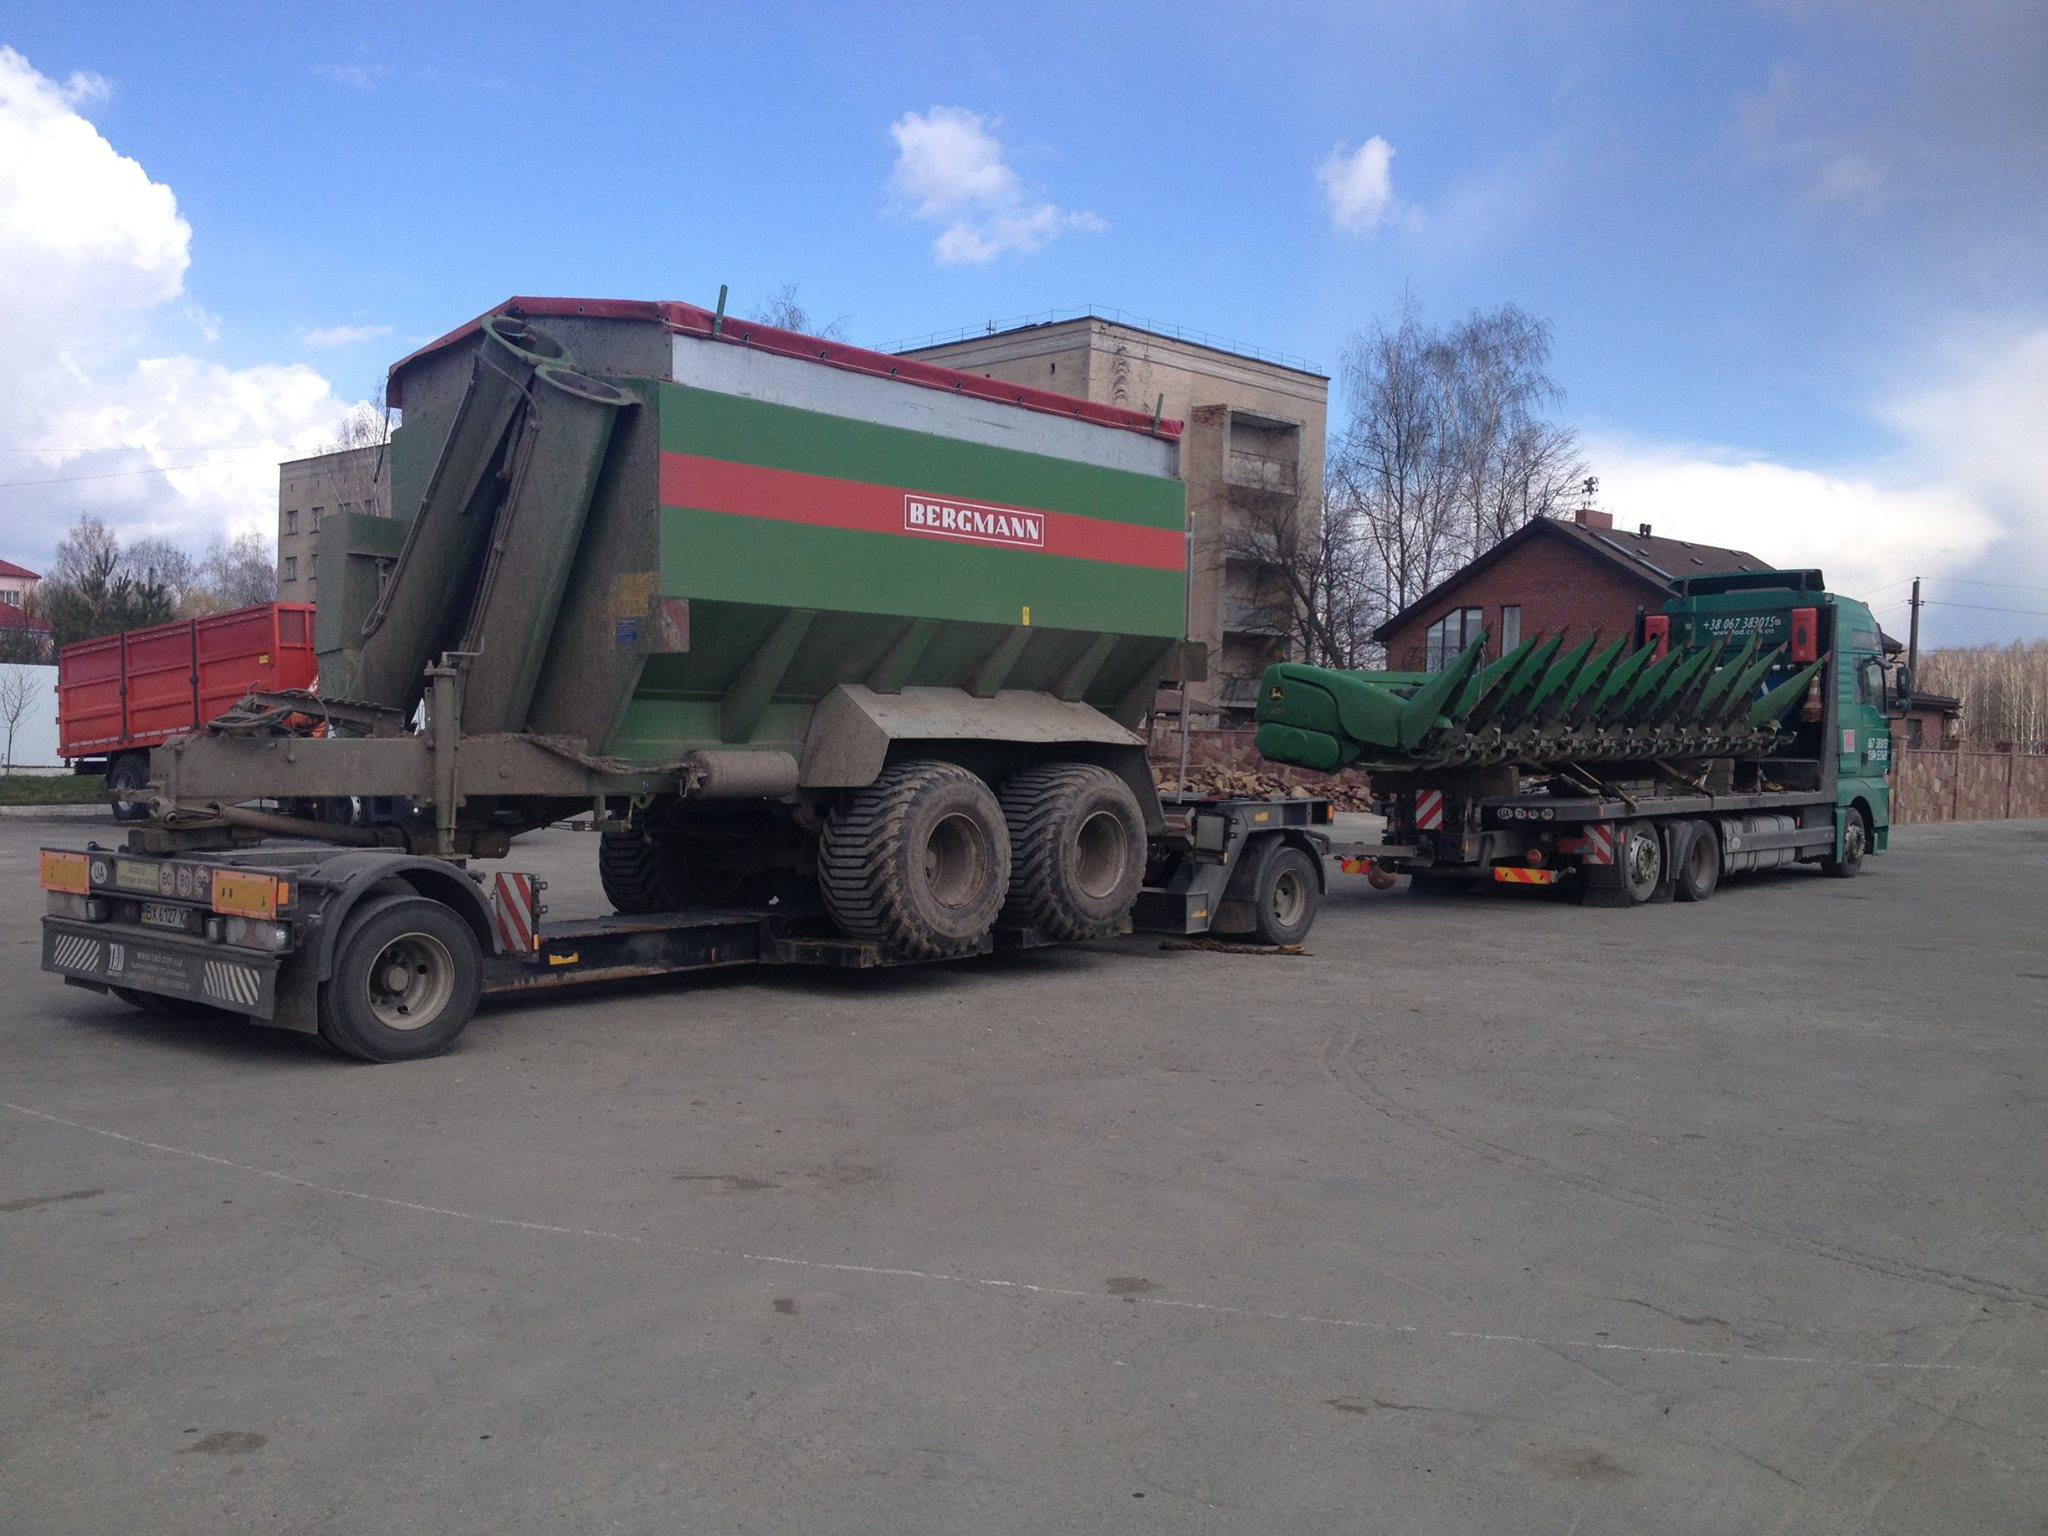 Bergmann fertilizer spreader transport